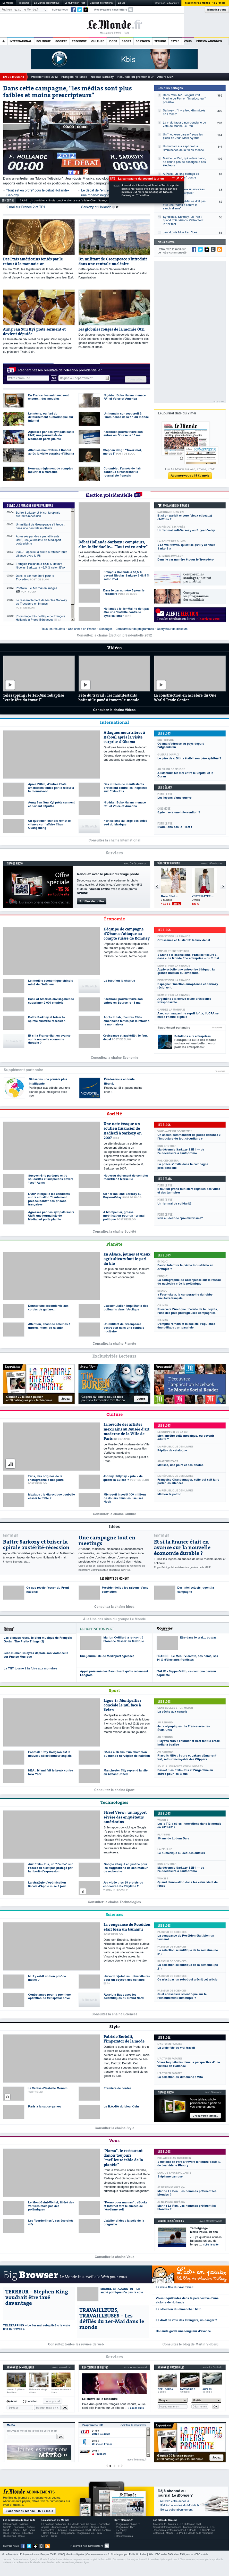 Le Monde at Wednesday May 2, 2012, 7:09 a.m. UTC